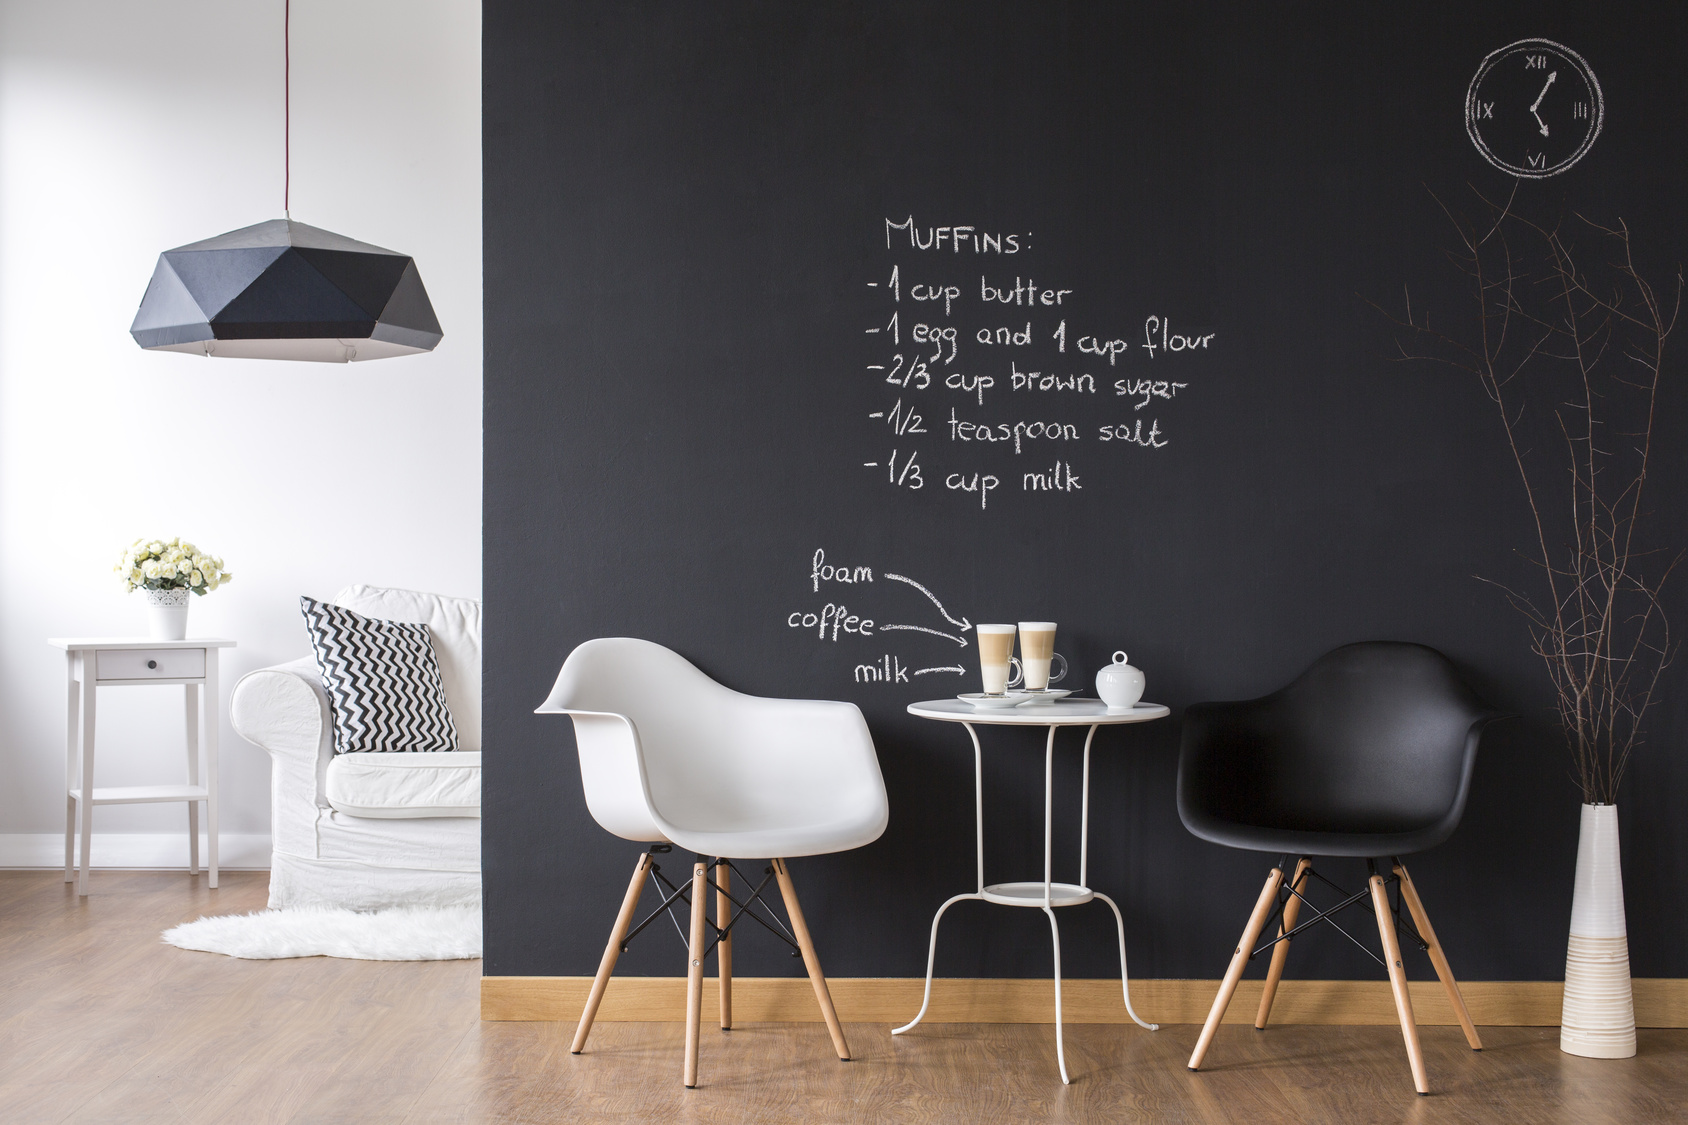 How to create a feature wall with photos - There Are A Number Of Ways To Create A Feature Wall